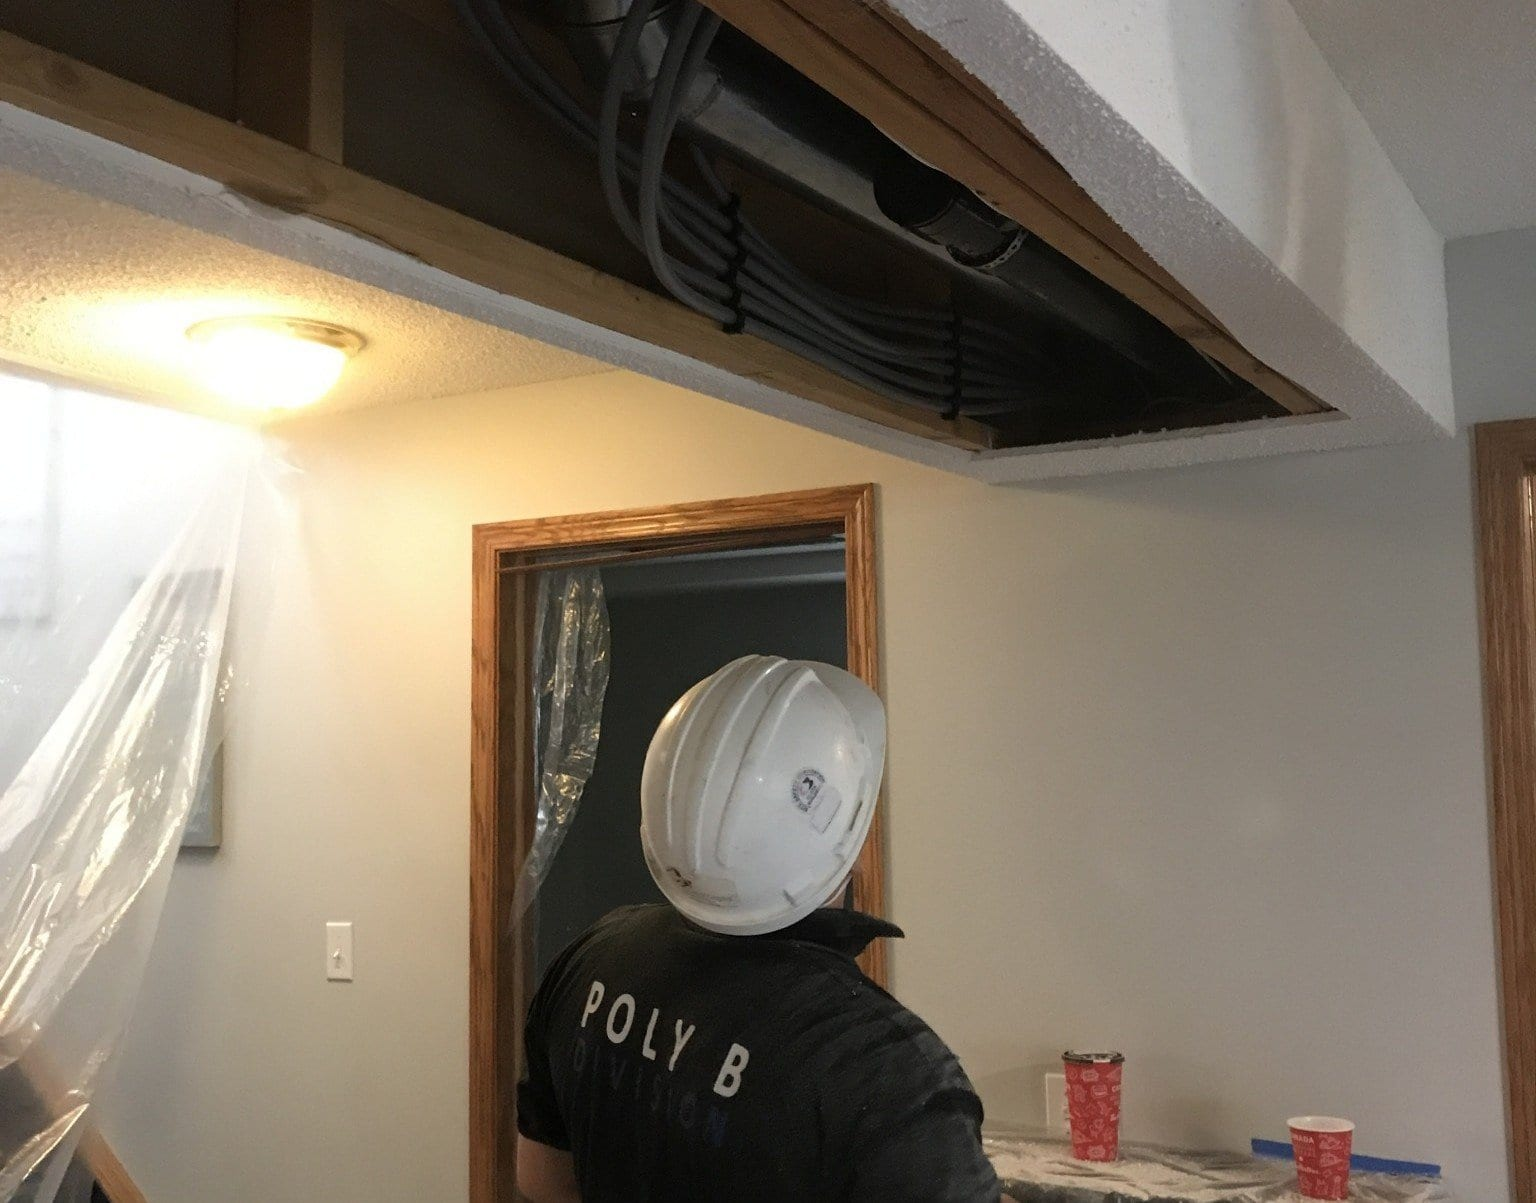 Poly B Pipe Replacement - Case Study #25 7